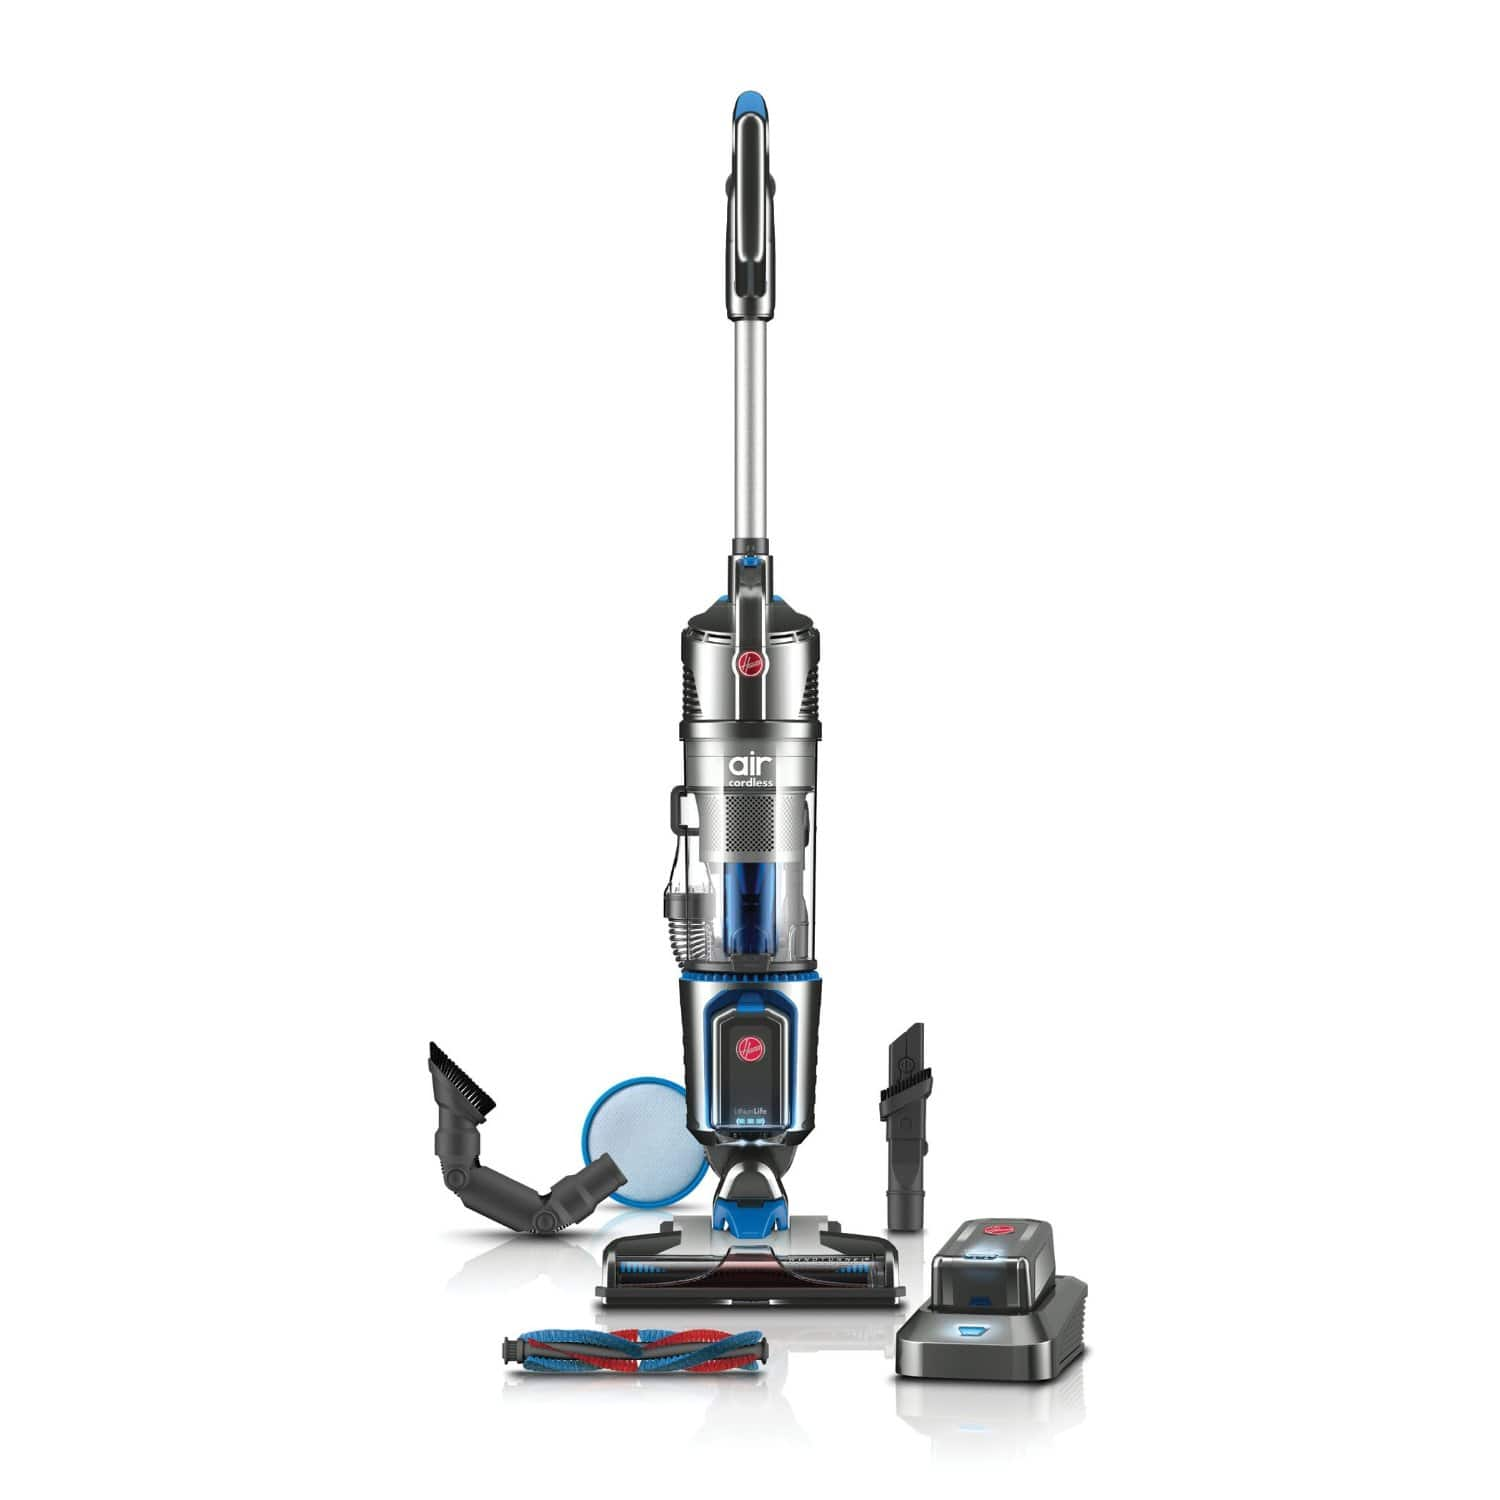 Hoover Air Cordless Series 3.0 Bagless Upright Vacuum  $190 + Free Shipping